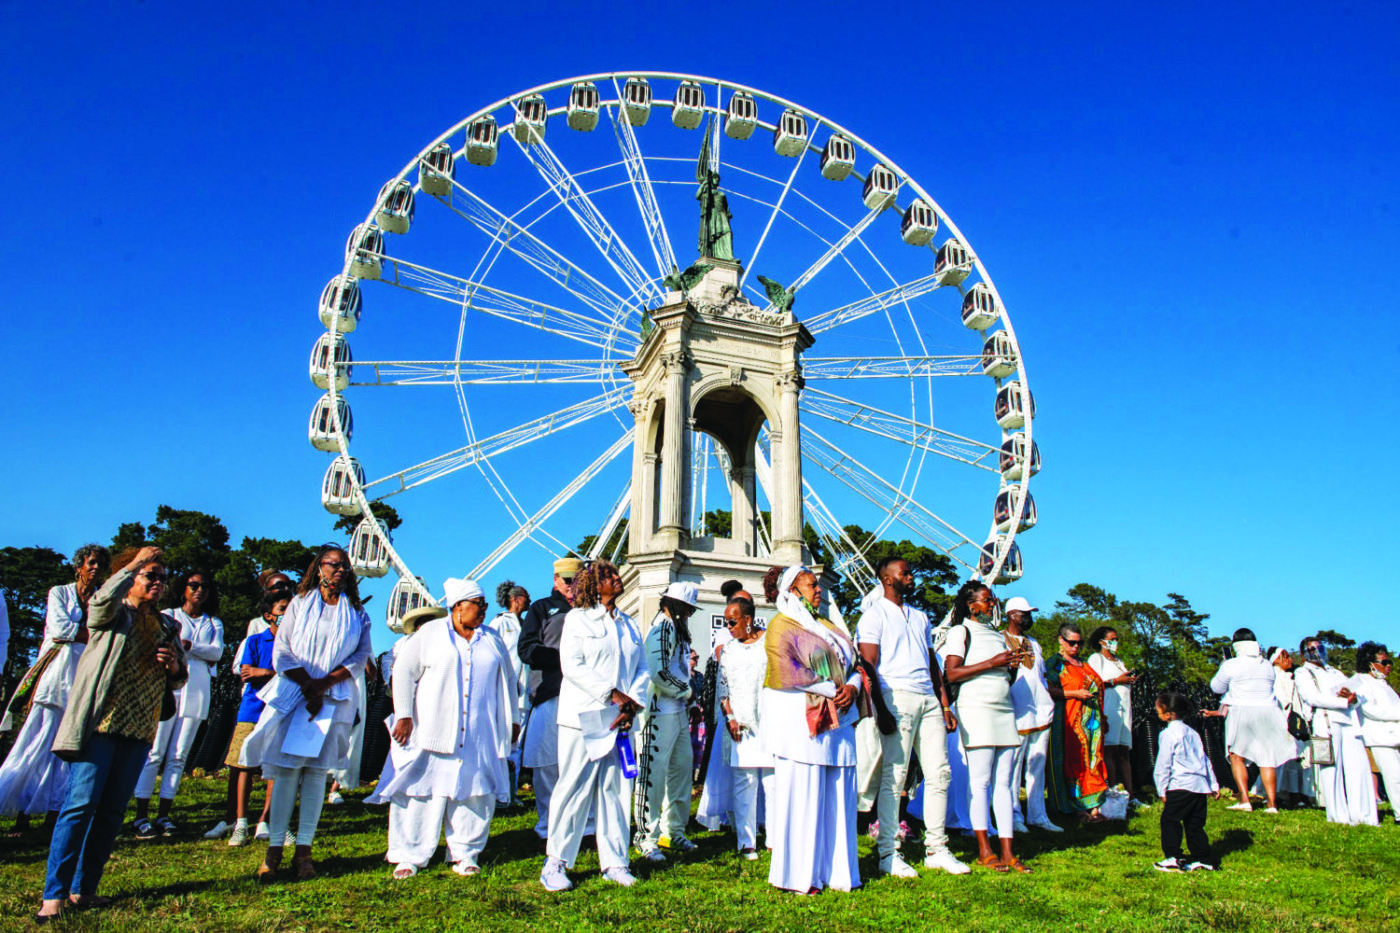 Crowd-by-ferris-wheel-Monumental-Reckoning-opening-ceremony-by-James-Watkins-061821-1400x933, Memory lives in the blood. Our ancestors live in us., Culture Currents